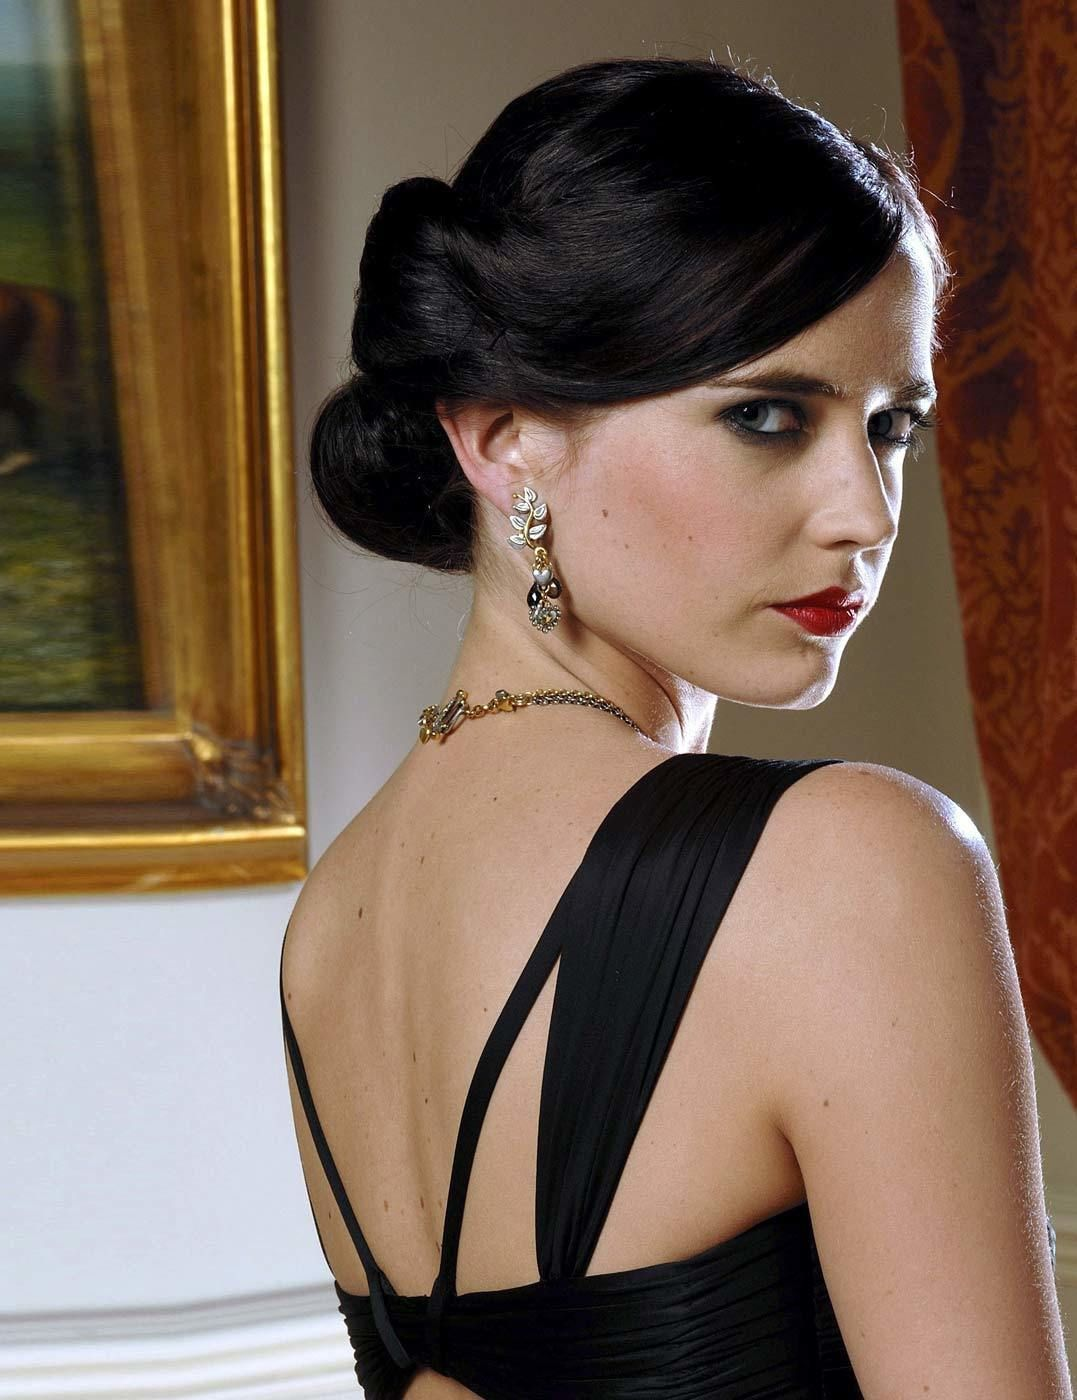 the most iconic bond girl hairstyles of all time | for me